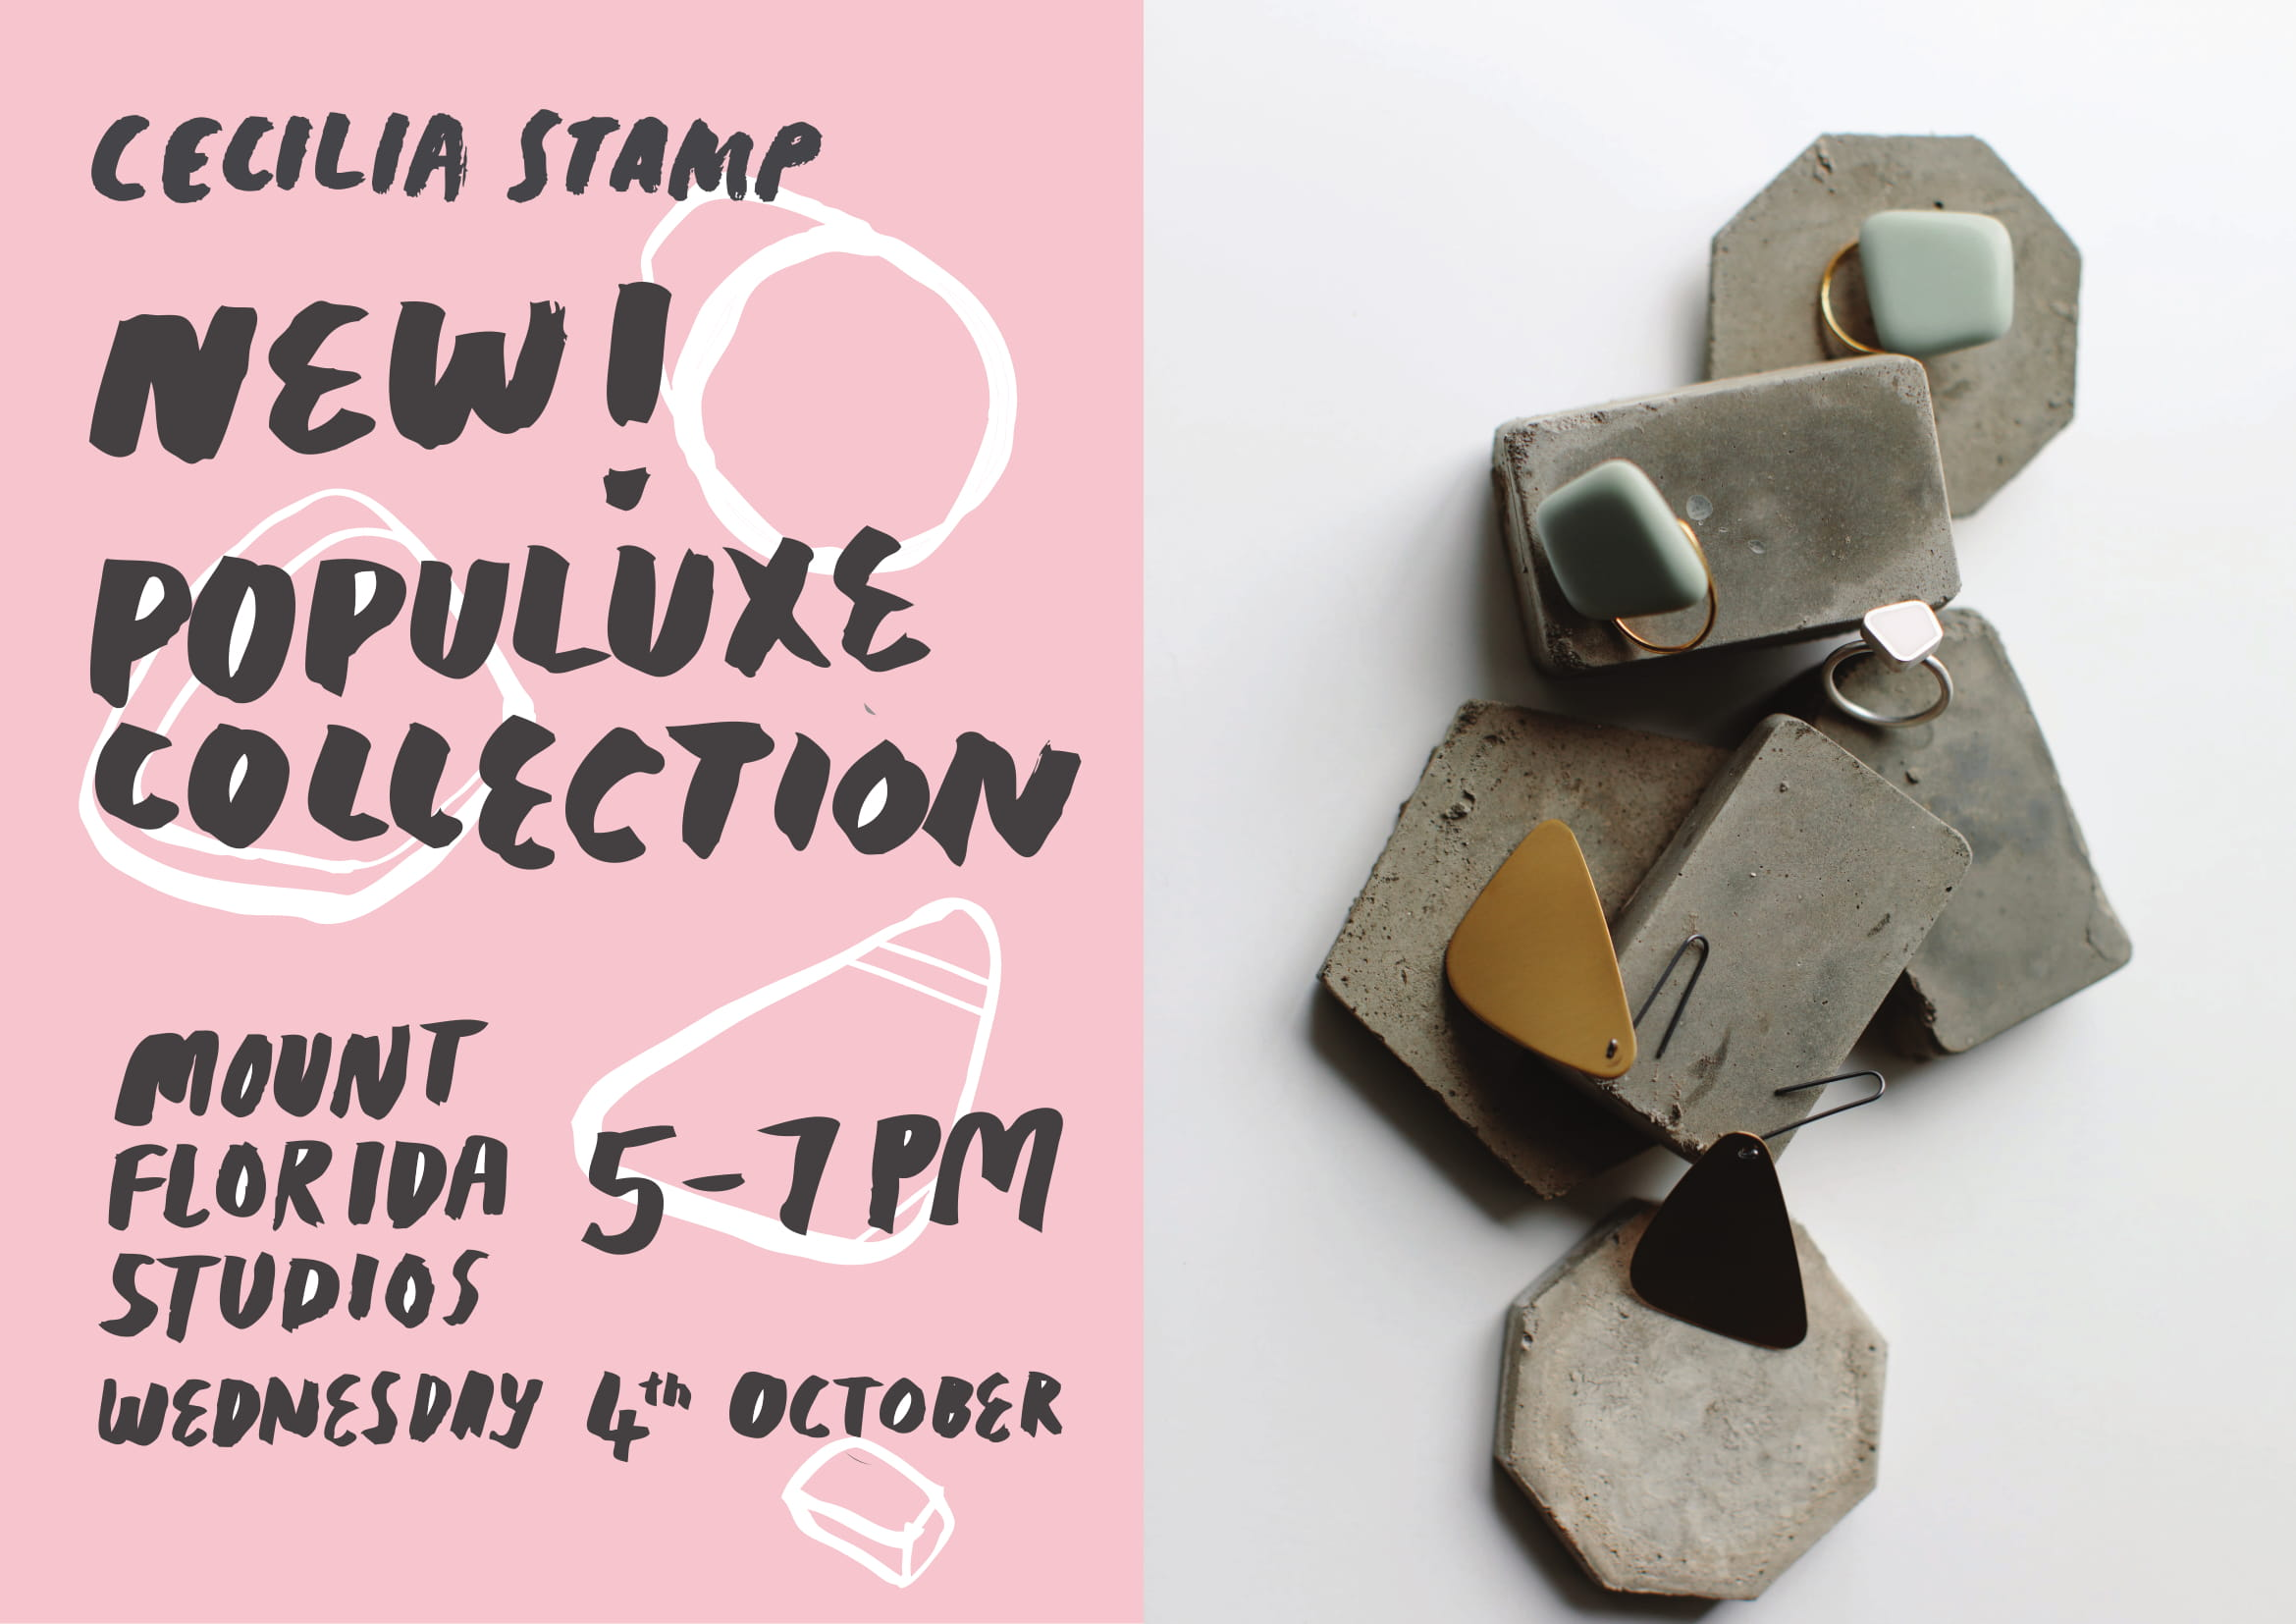 POPULUXE Invitation Cecilia Stamp-1.jpg